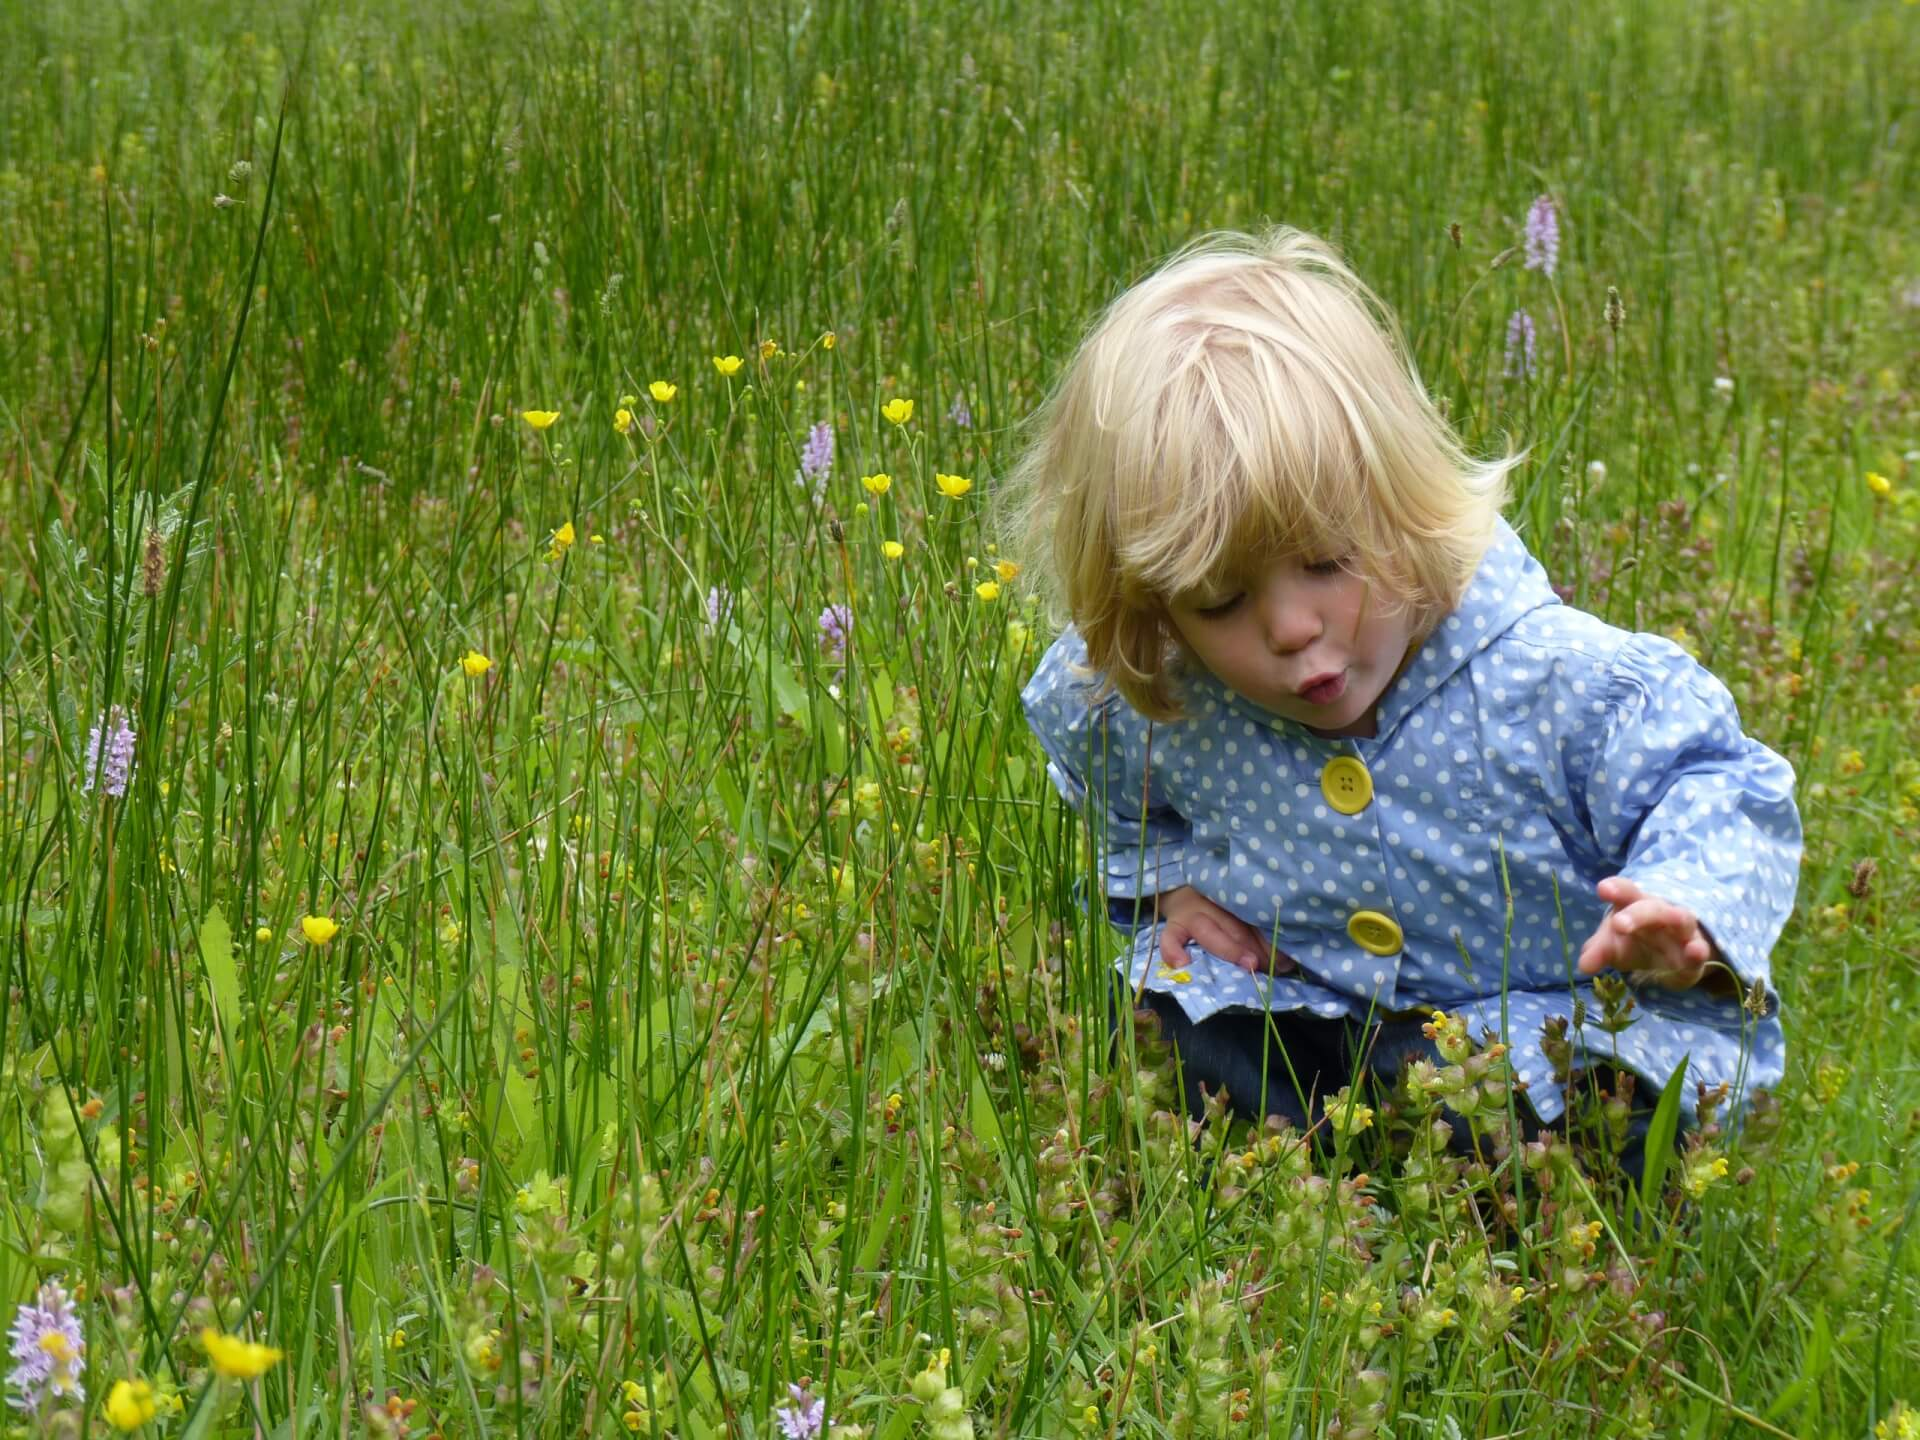 A small child wearing a blue coat in a green field looking at the wild flowers